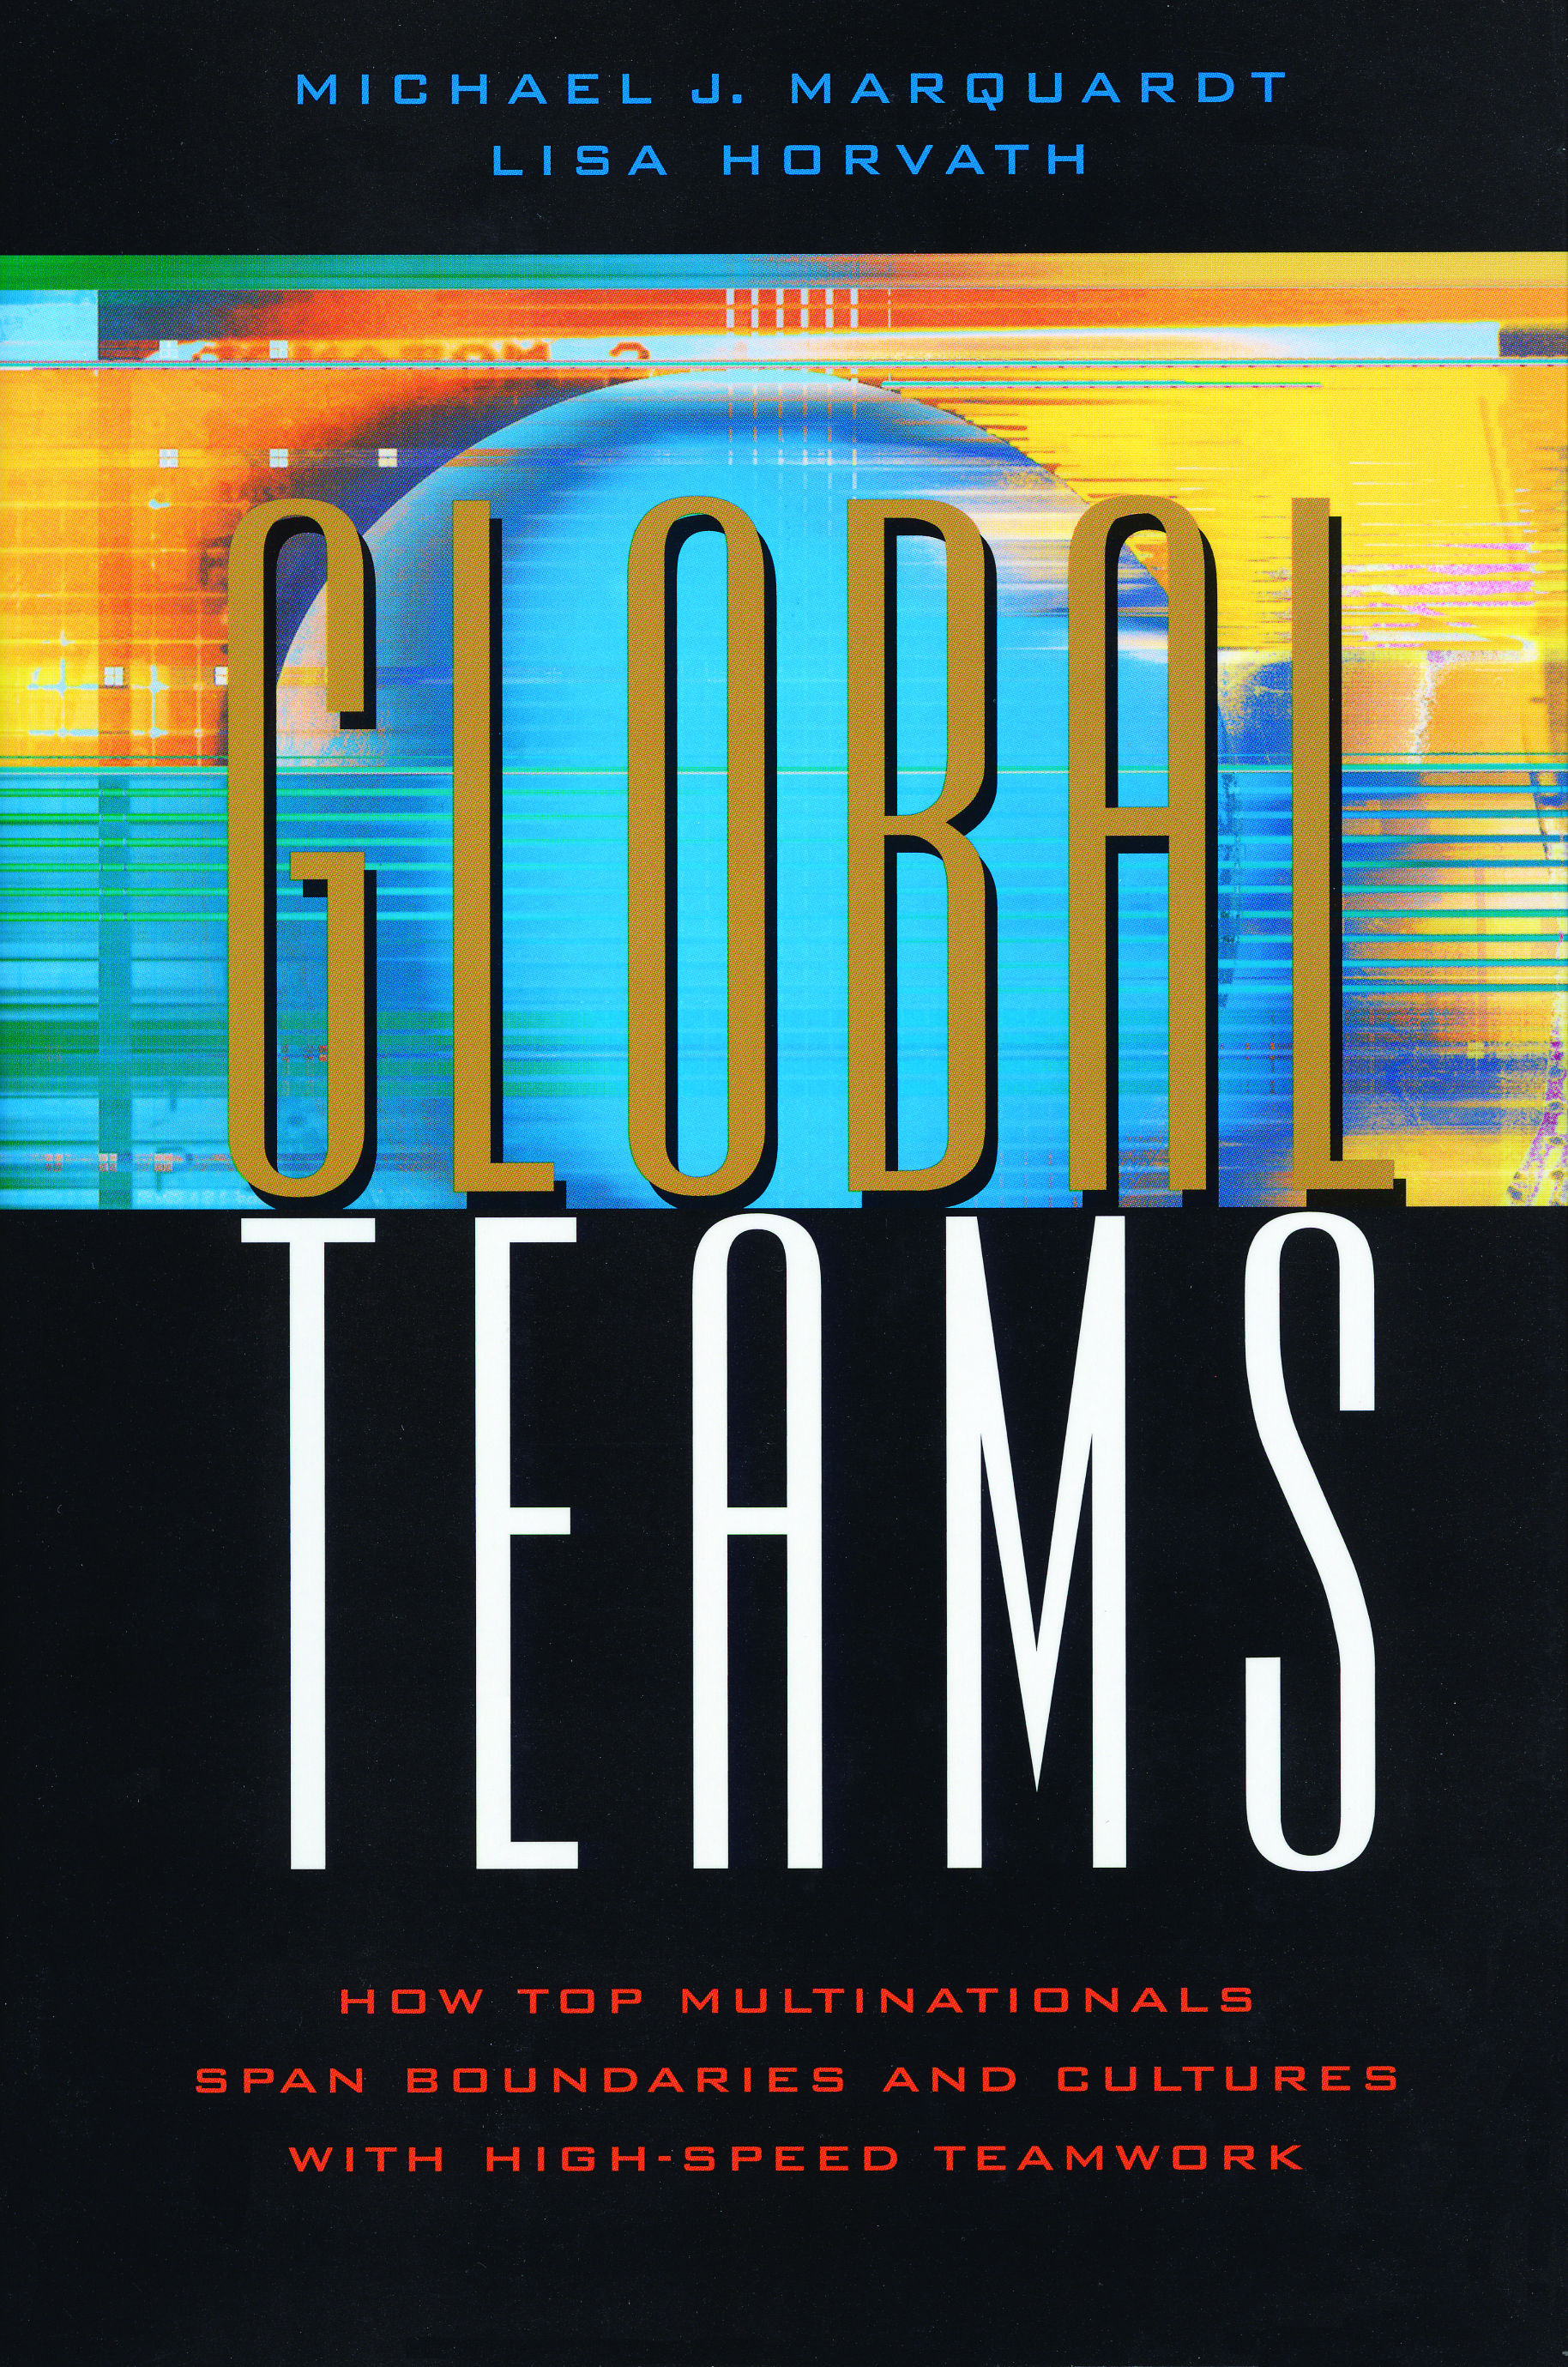 Global Teams hi-res.jpg